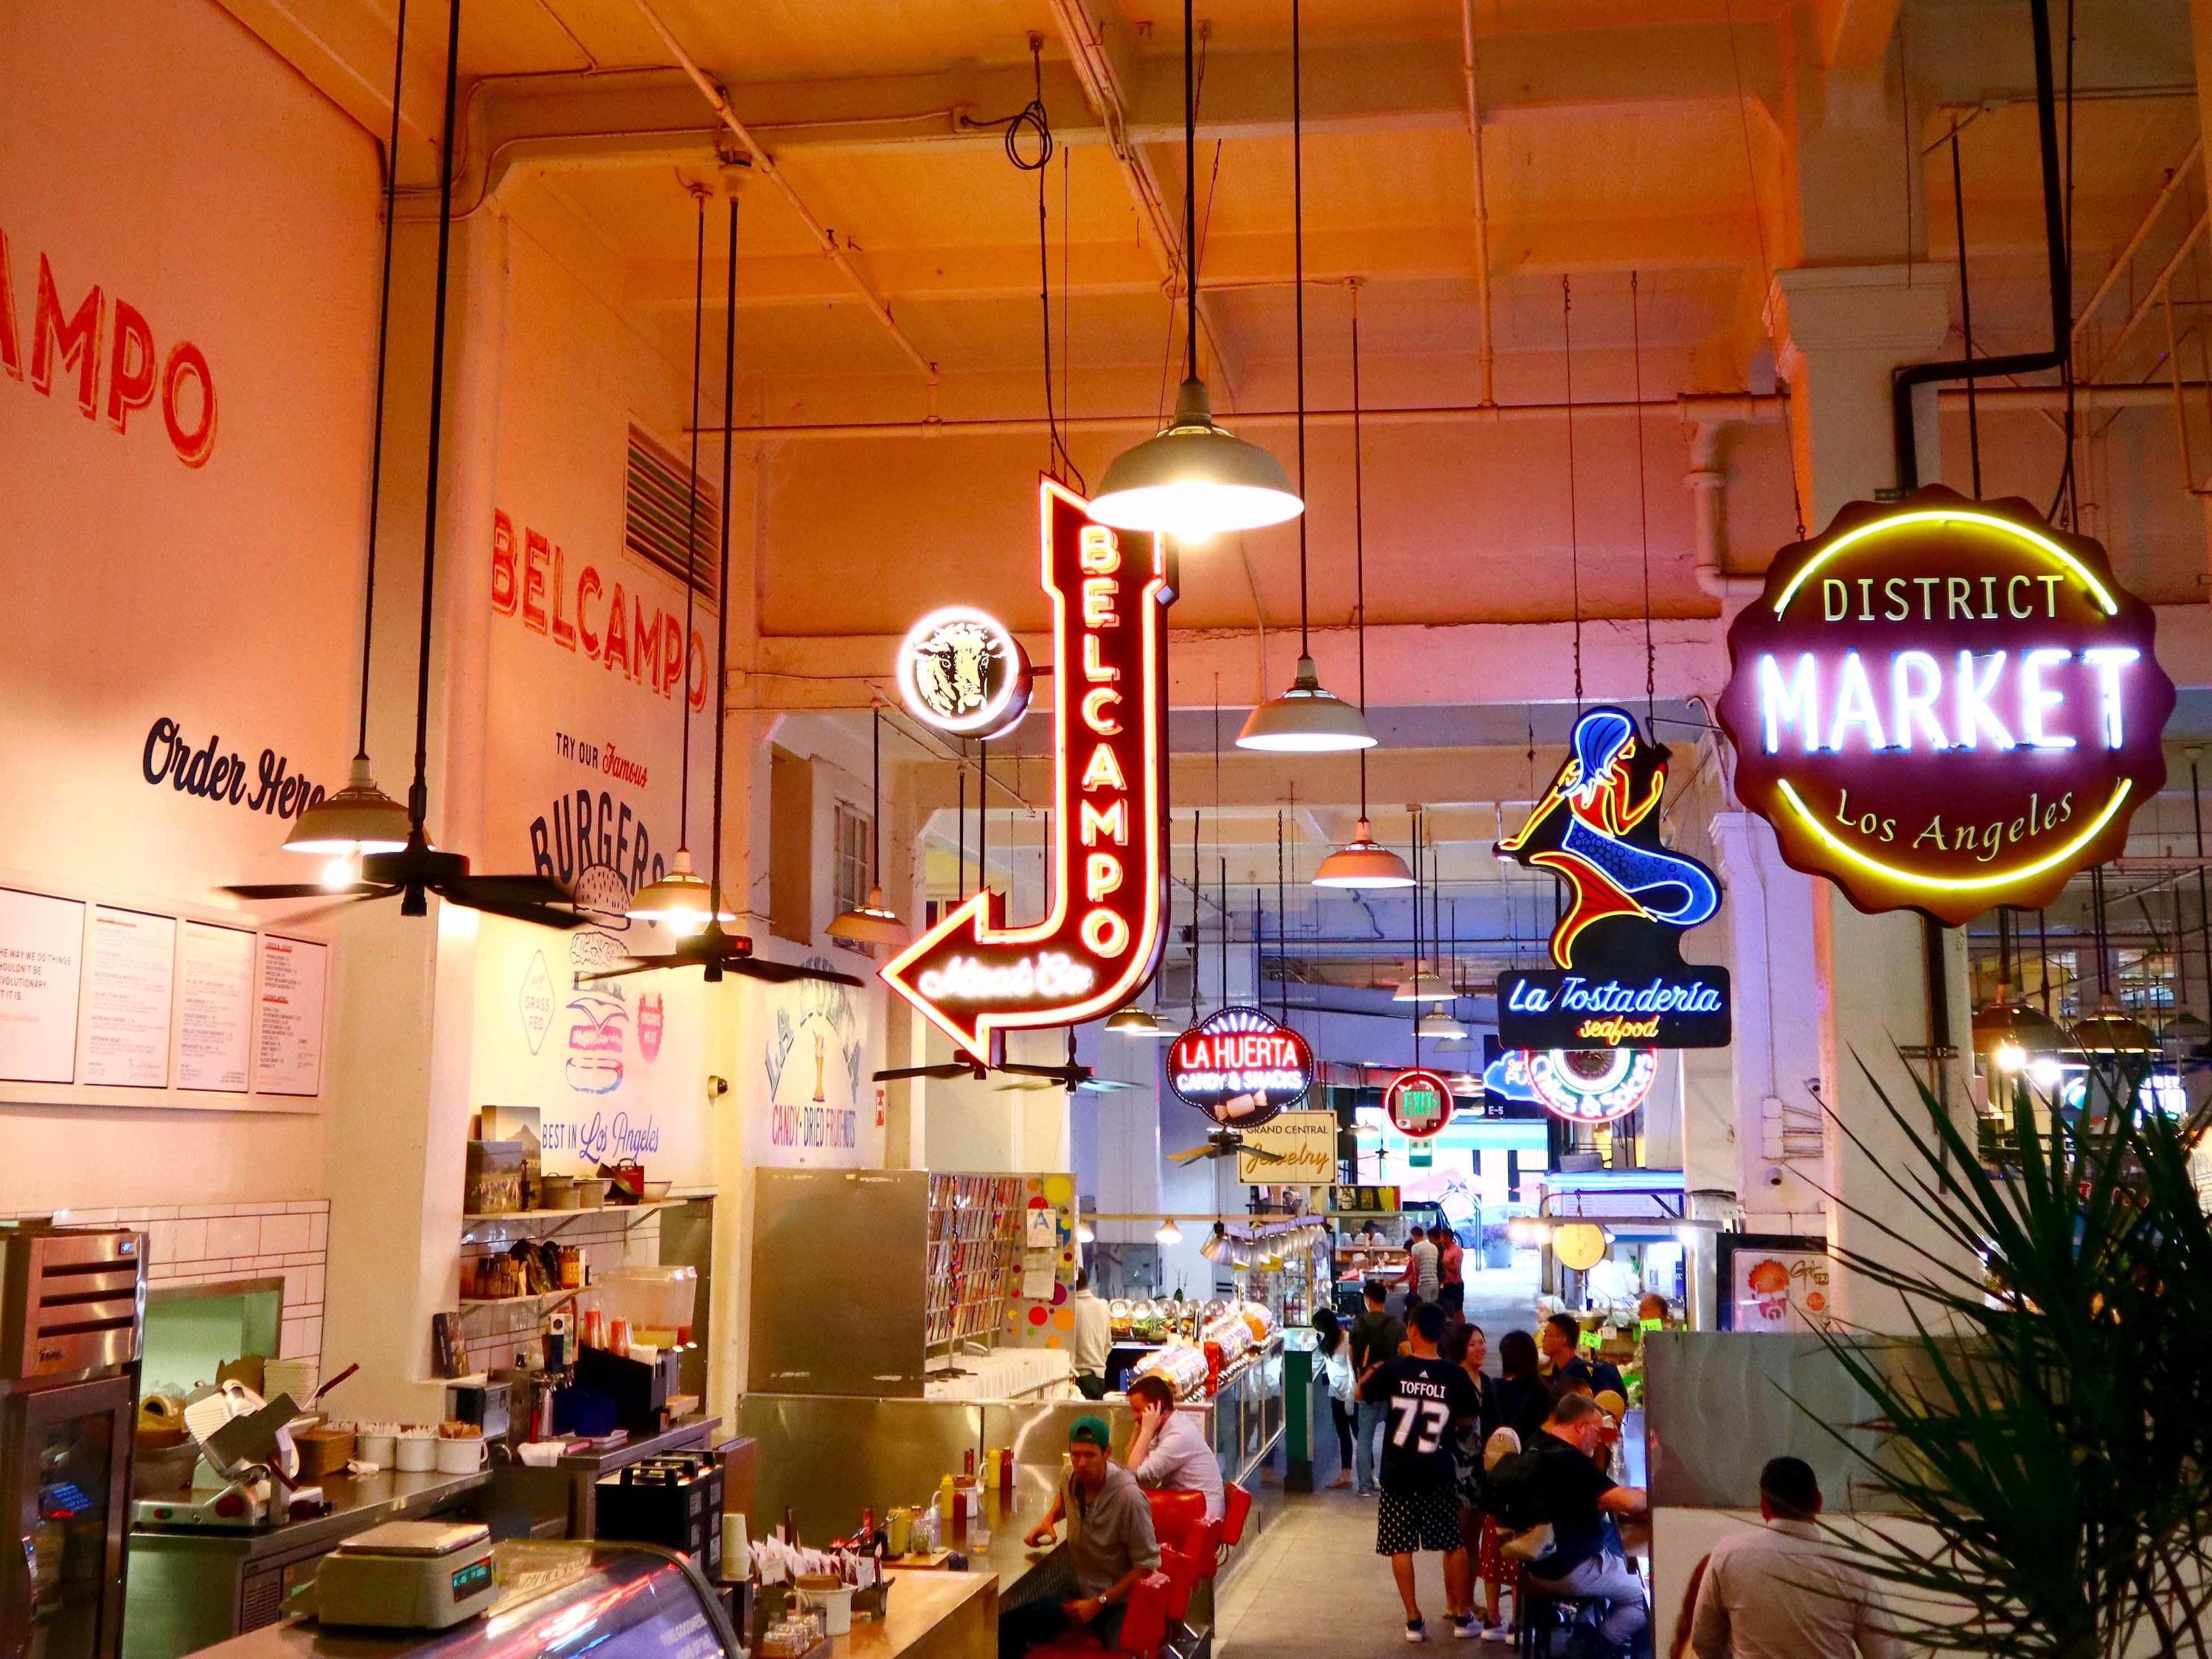 Grand Central Market, Los Angeles, California